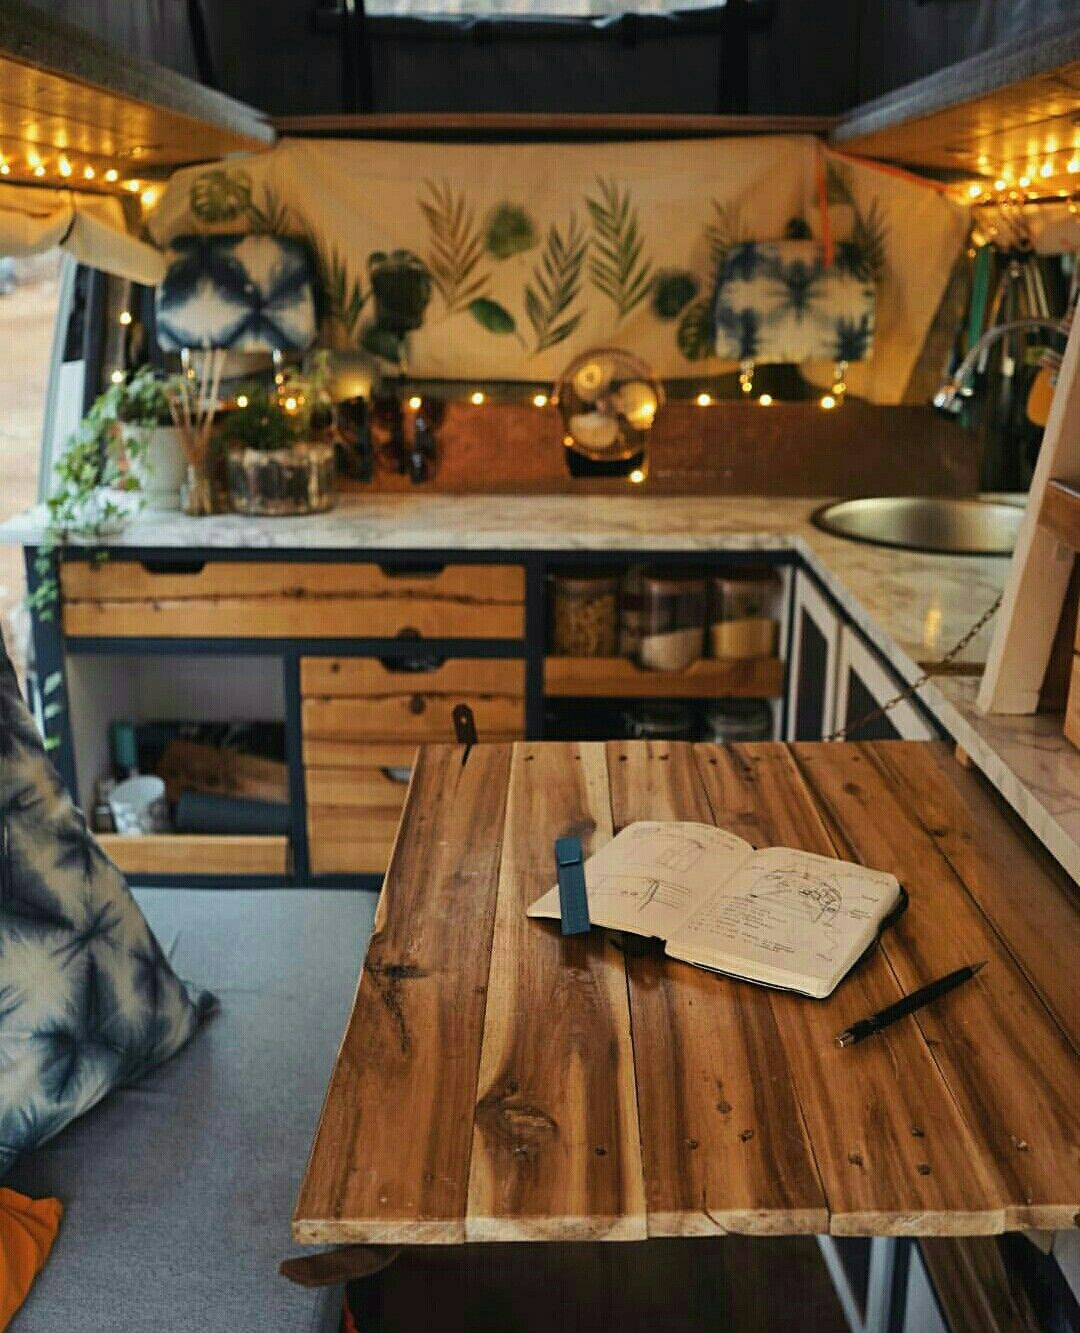 pin by beverly bauer on aa van dwelling wohnwagen campingbus wohnmobil. Black Bedroom Furniture Sets. Home Design Ideas